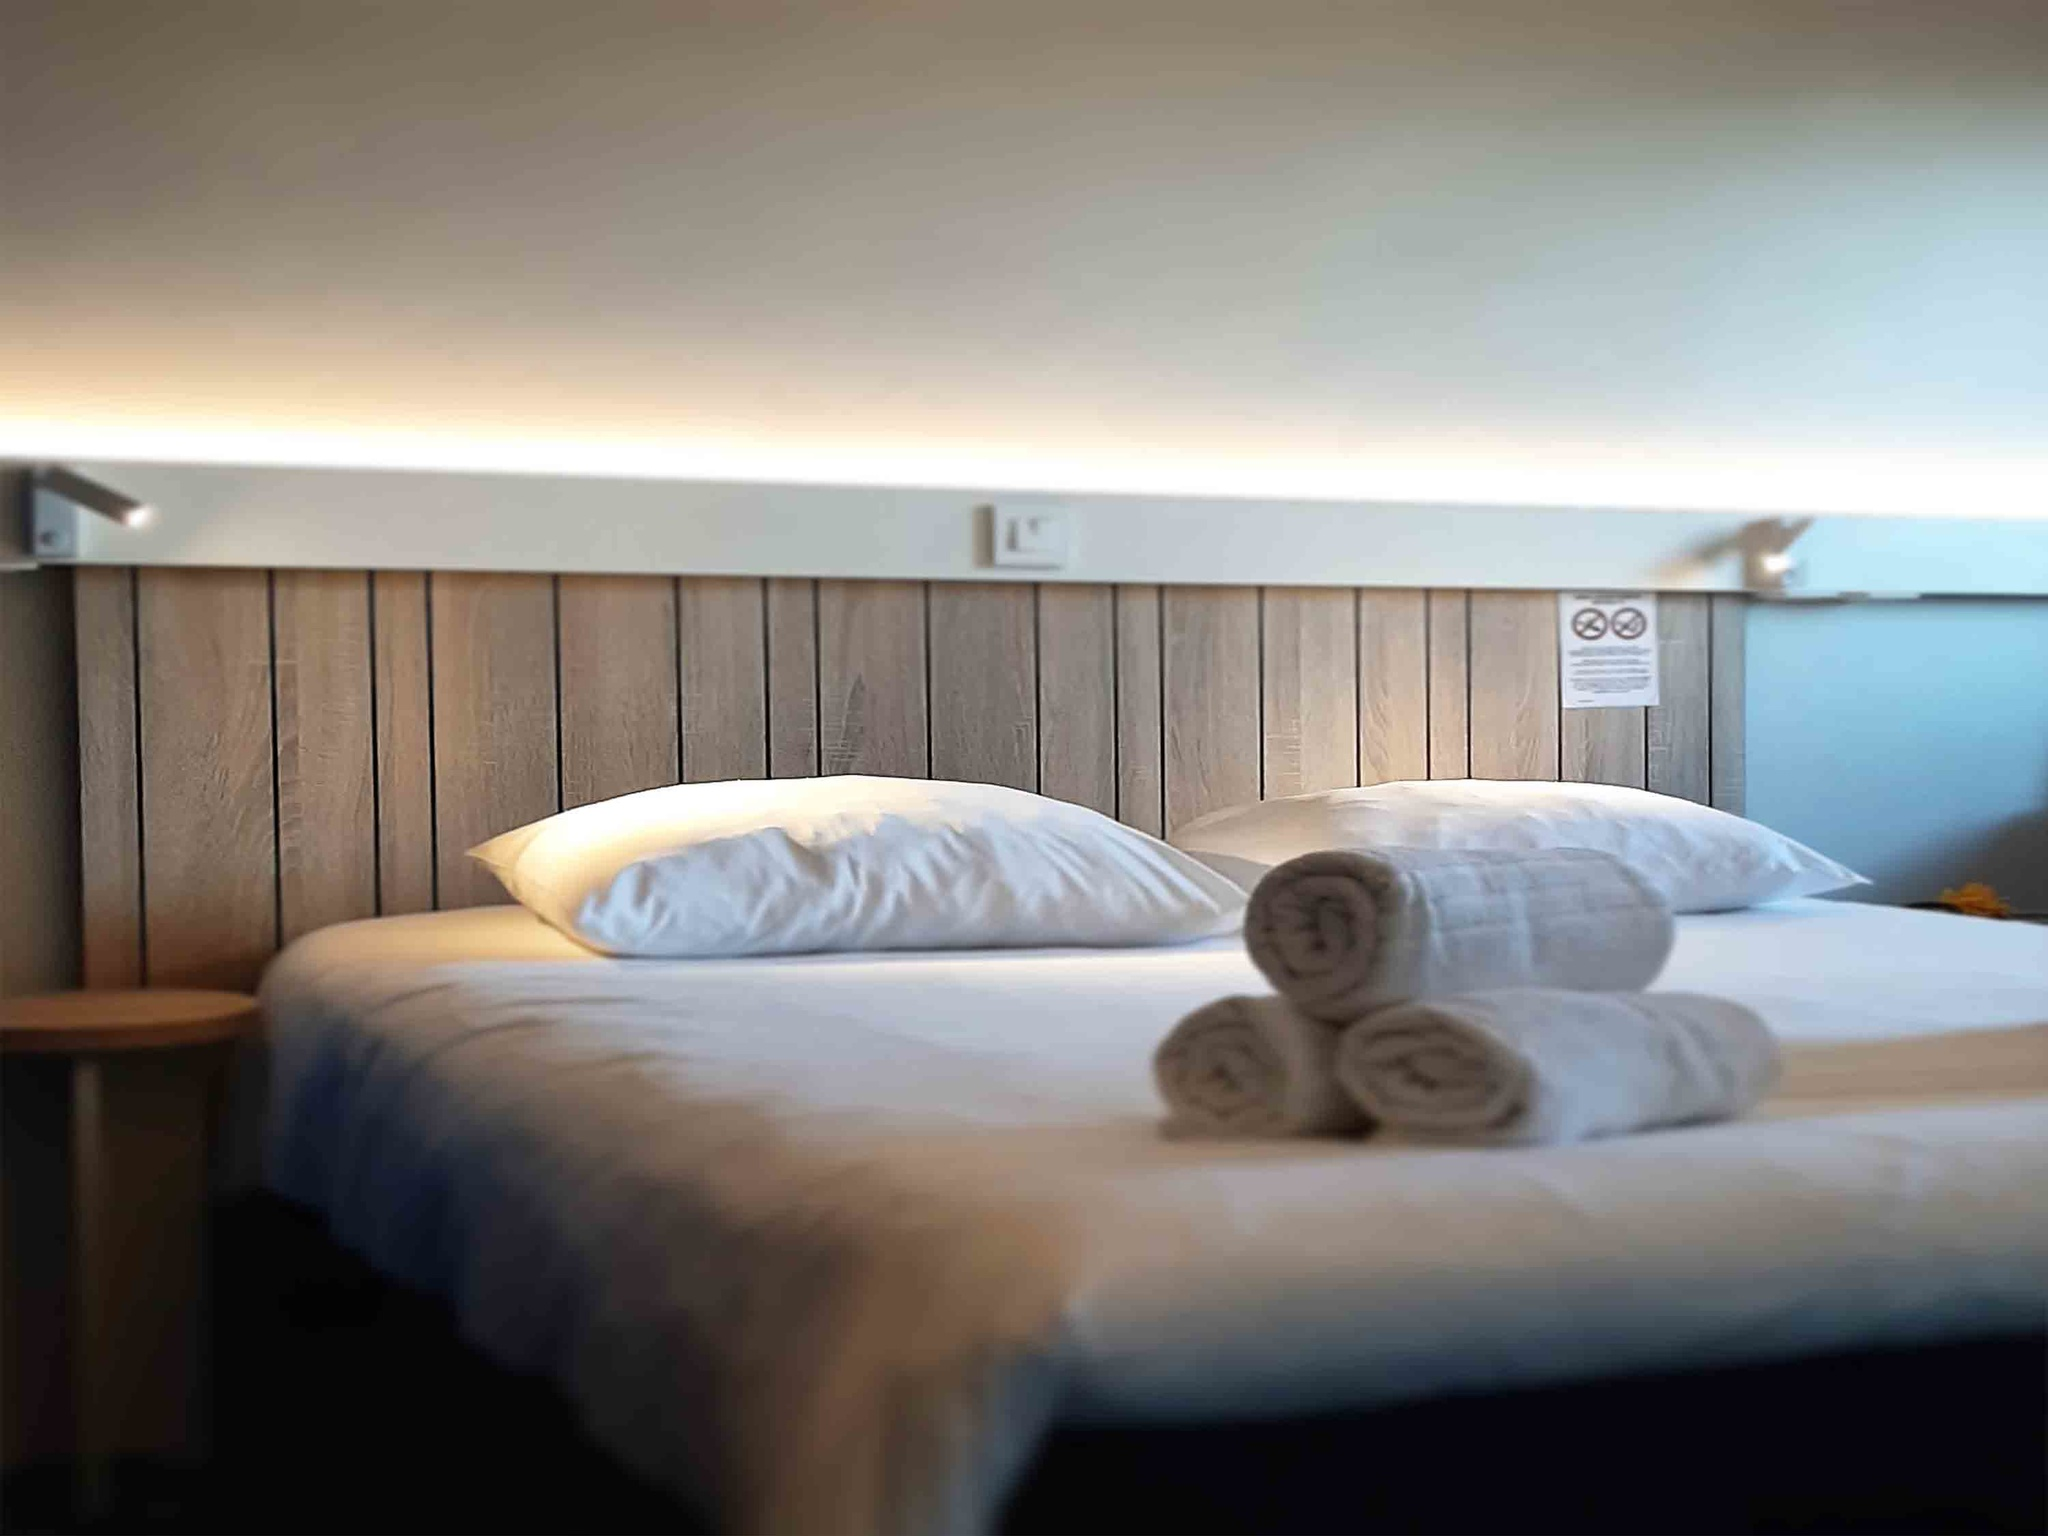 Hotel in cesson sevigne ibis rennes cesson for Hotels rennes